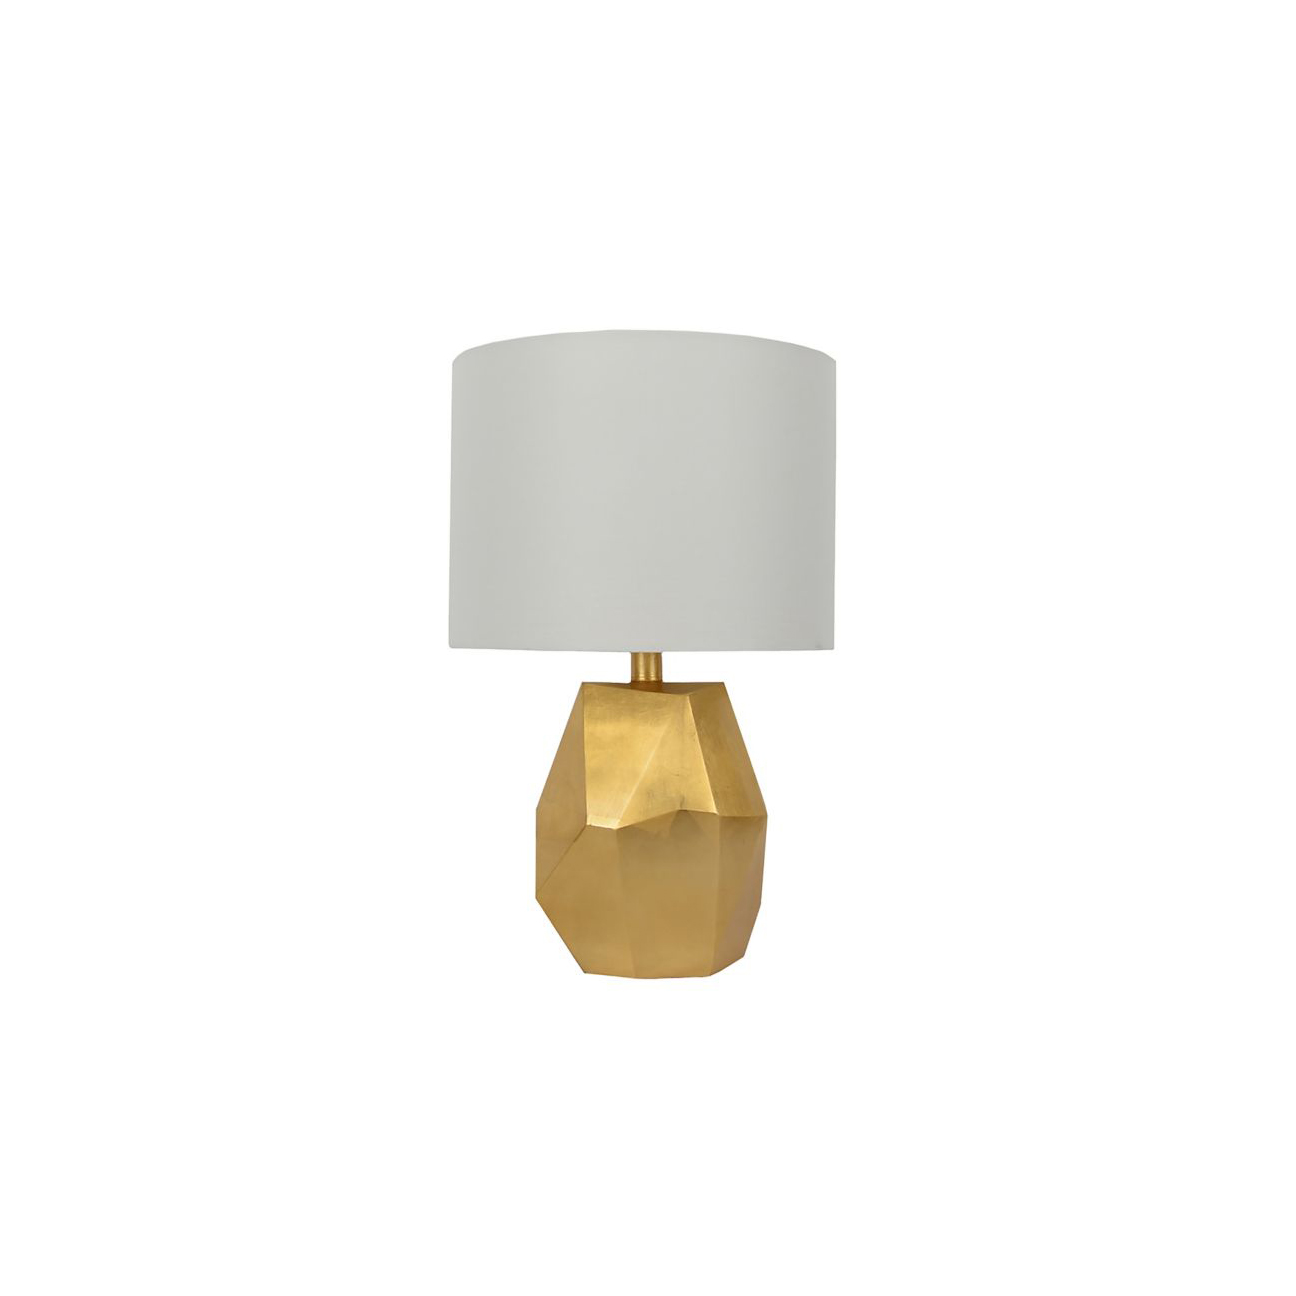 Bee & Willow Home Multi-Faceted Table Lamp